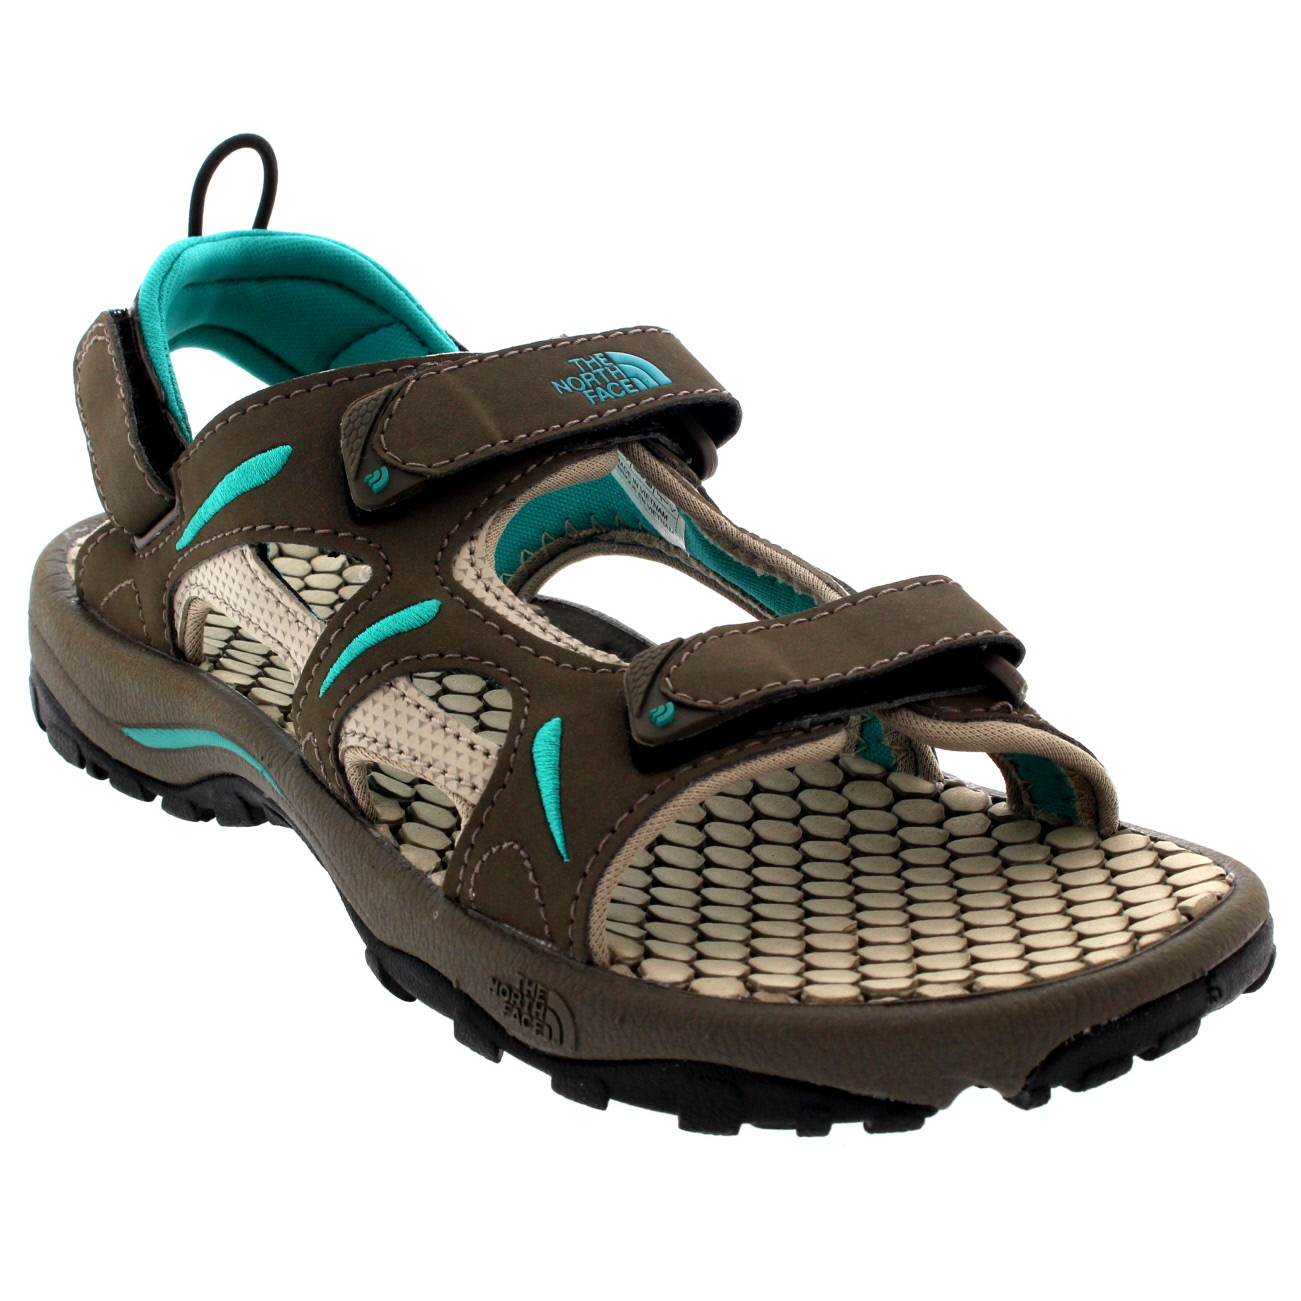 The North Face Hedgehog Sandal